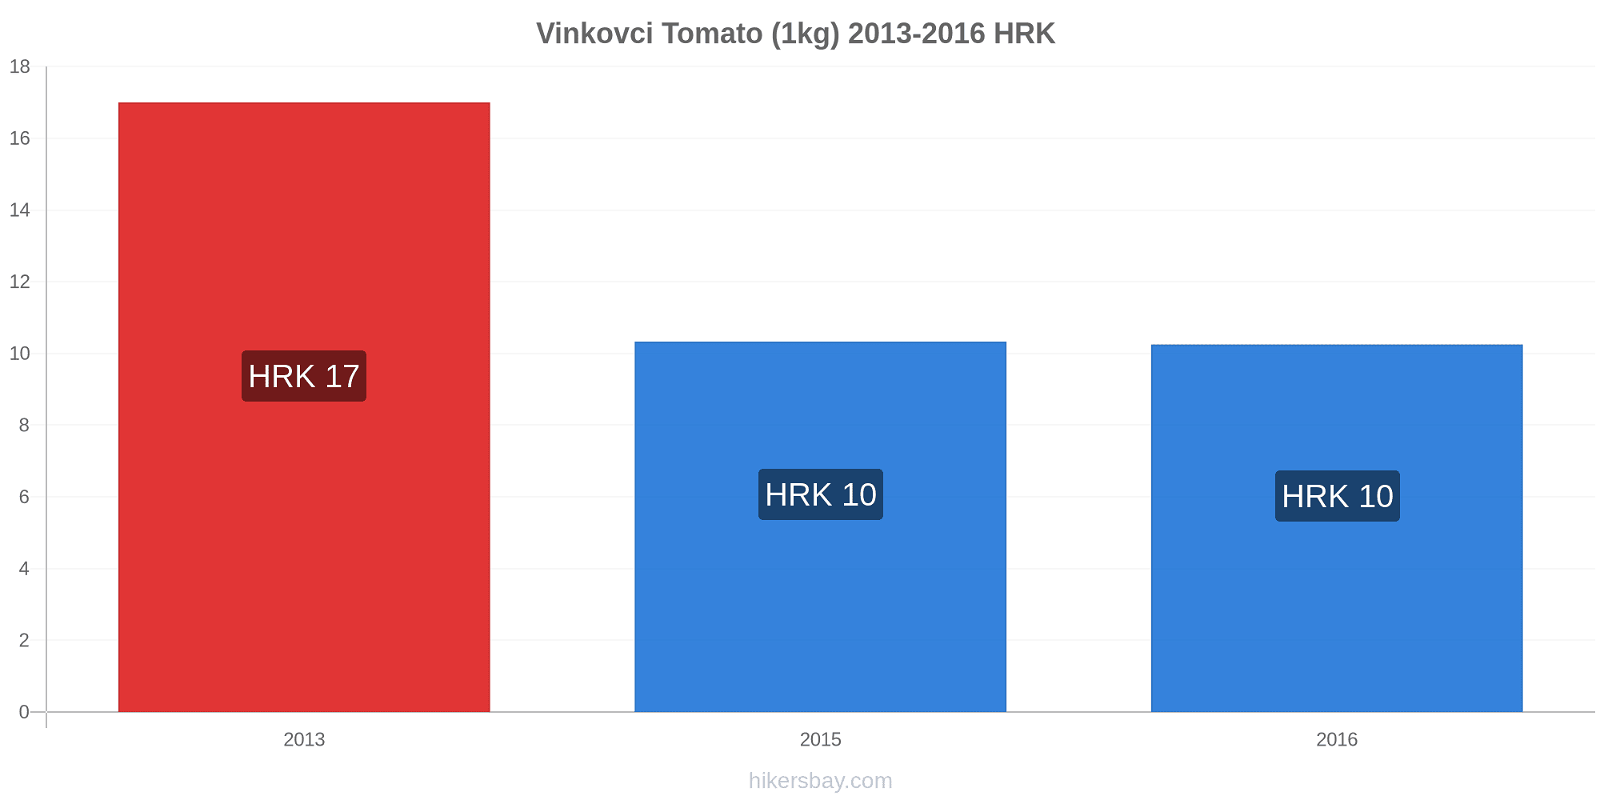 Vinkovci price changes Tomato (1kg) hikersbay.com